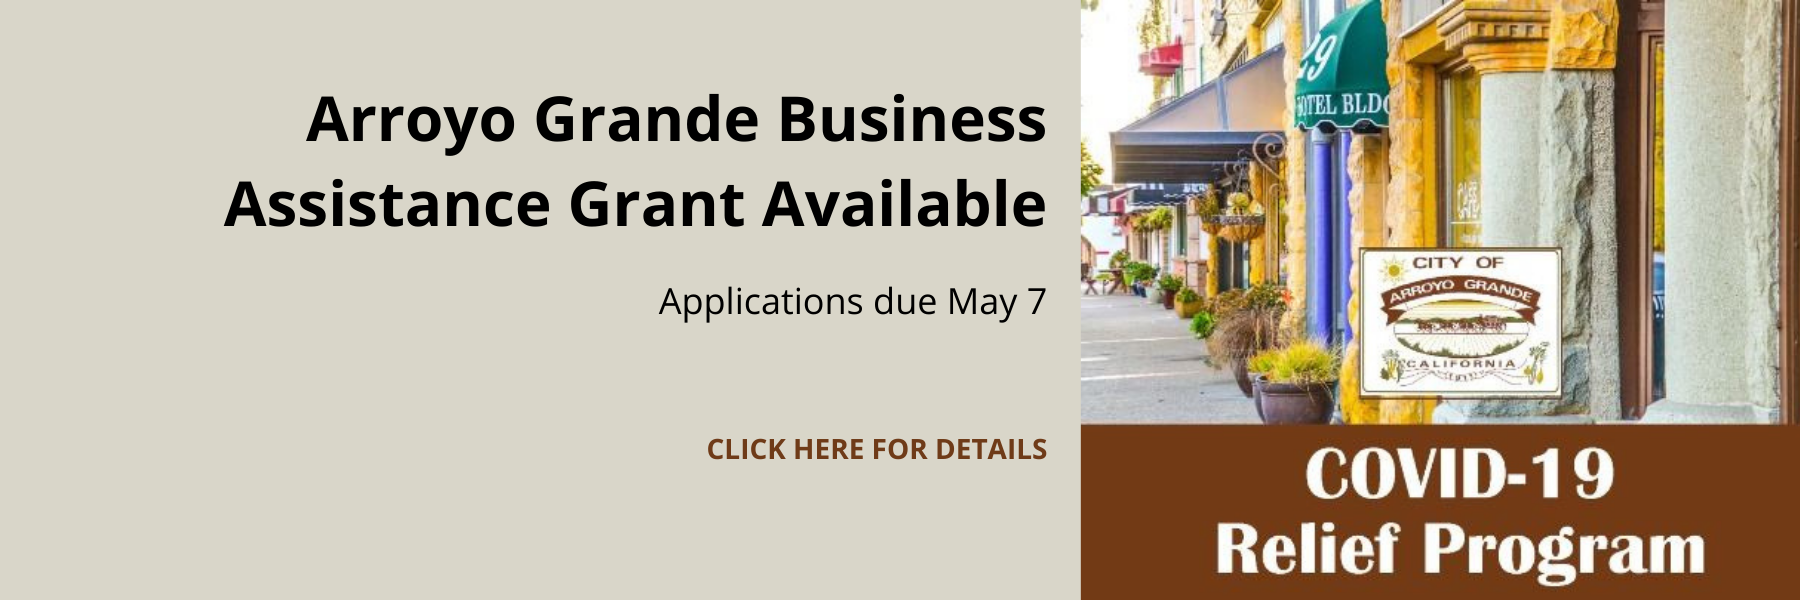 Web-panel-for-Arroyo-Grande-Business-Assistance-Grant.png